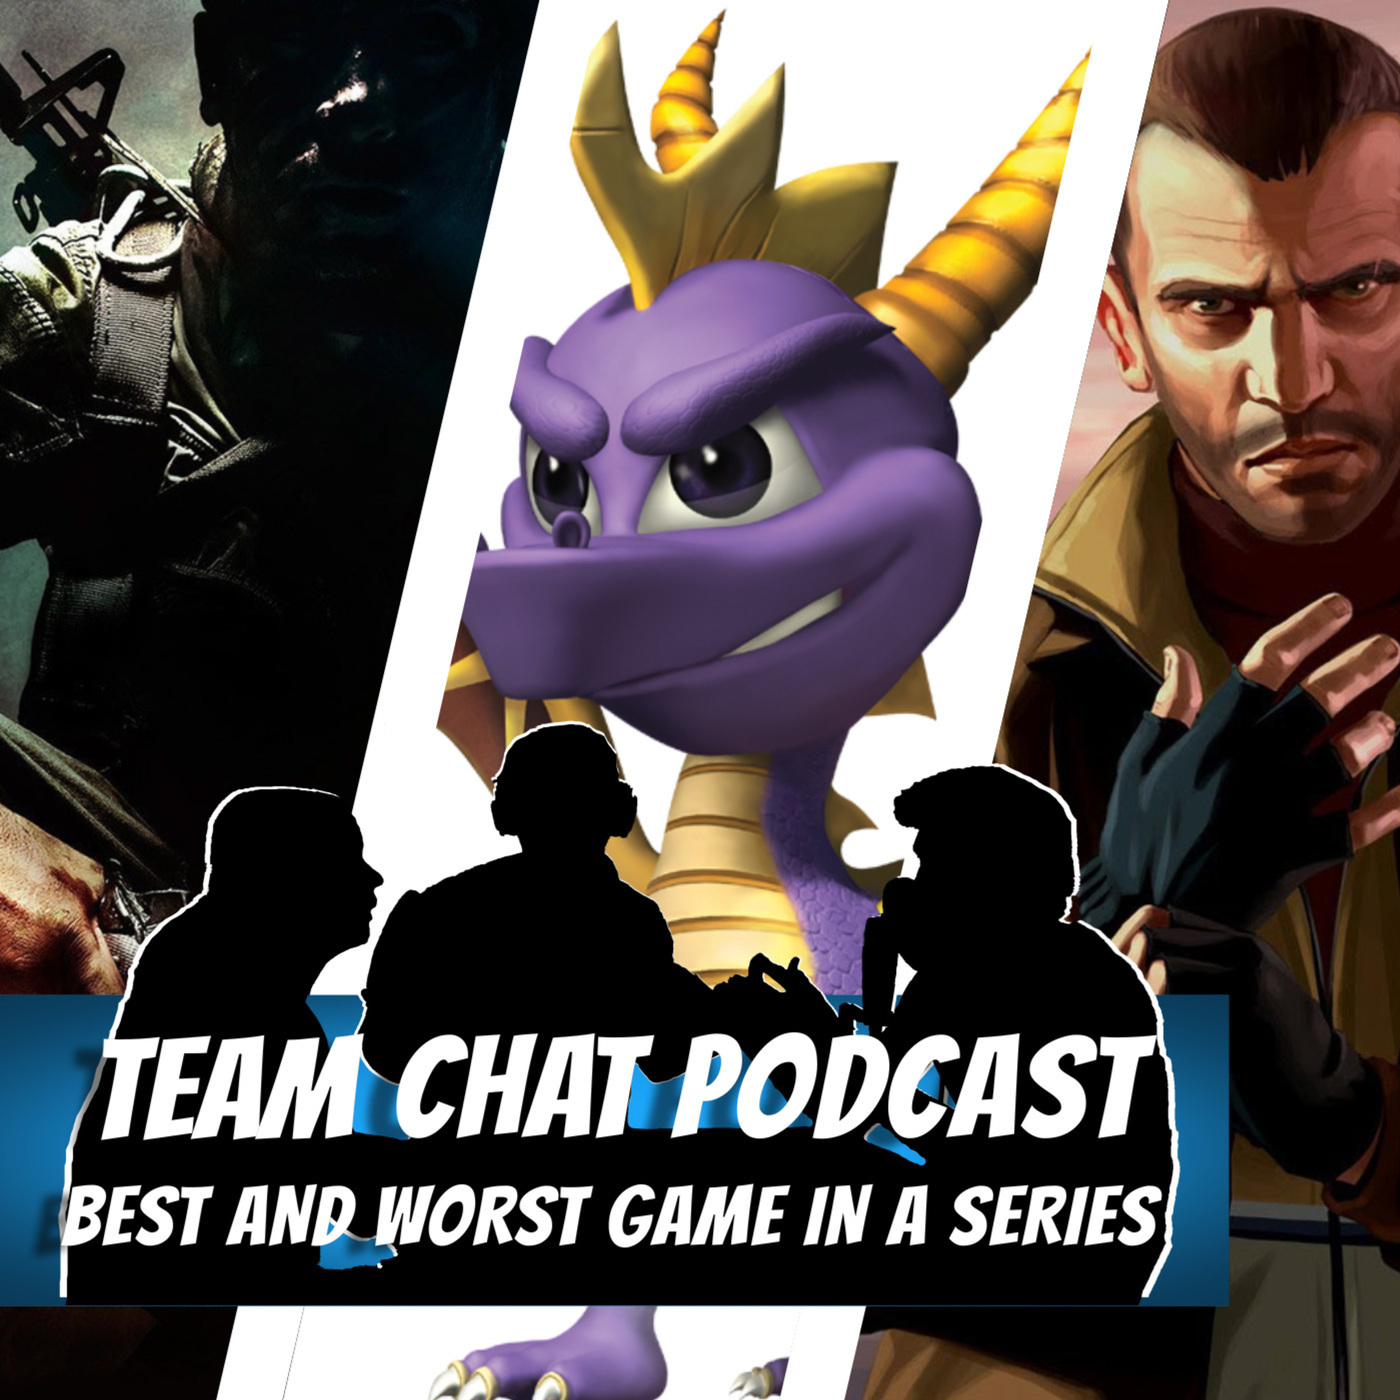 Team Chat Podcast: A Video Game Podcast: REPLAY - Best & Worst Games in a Series